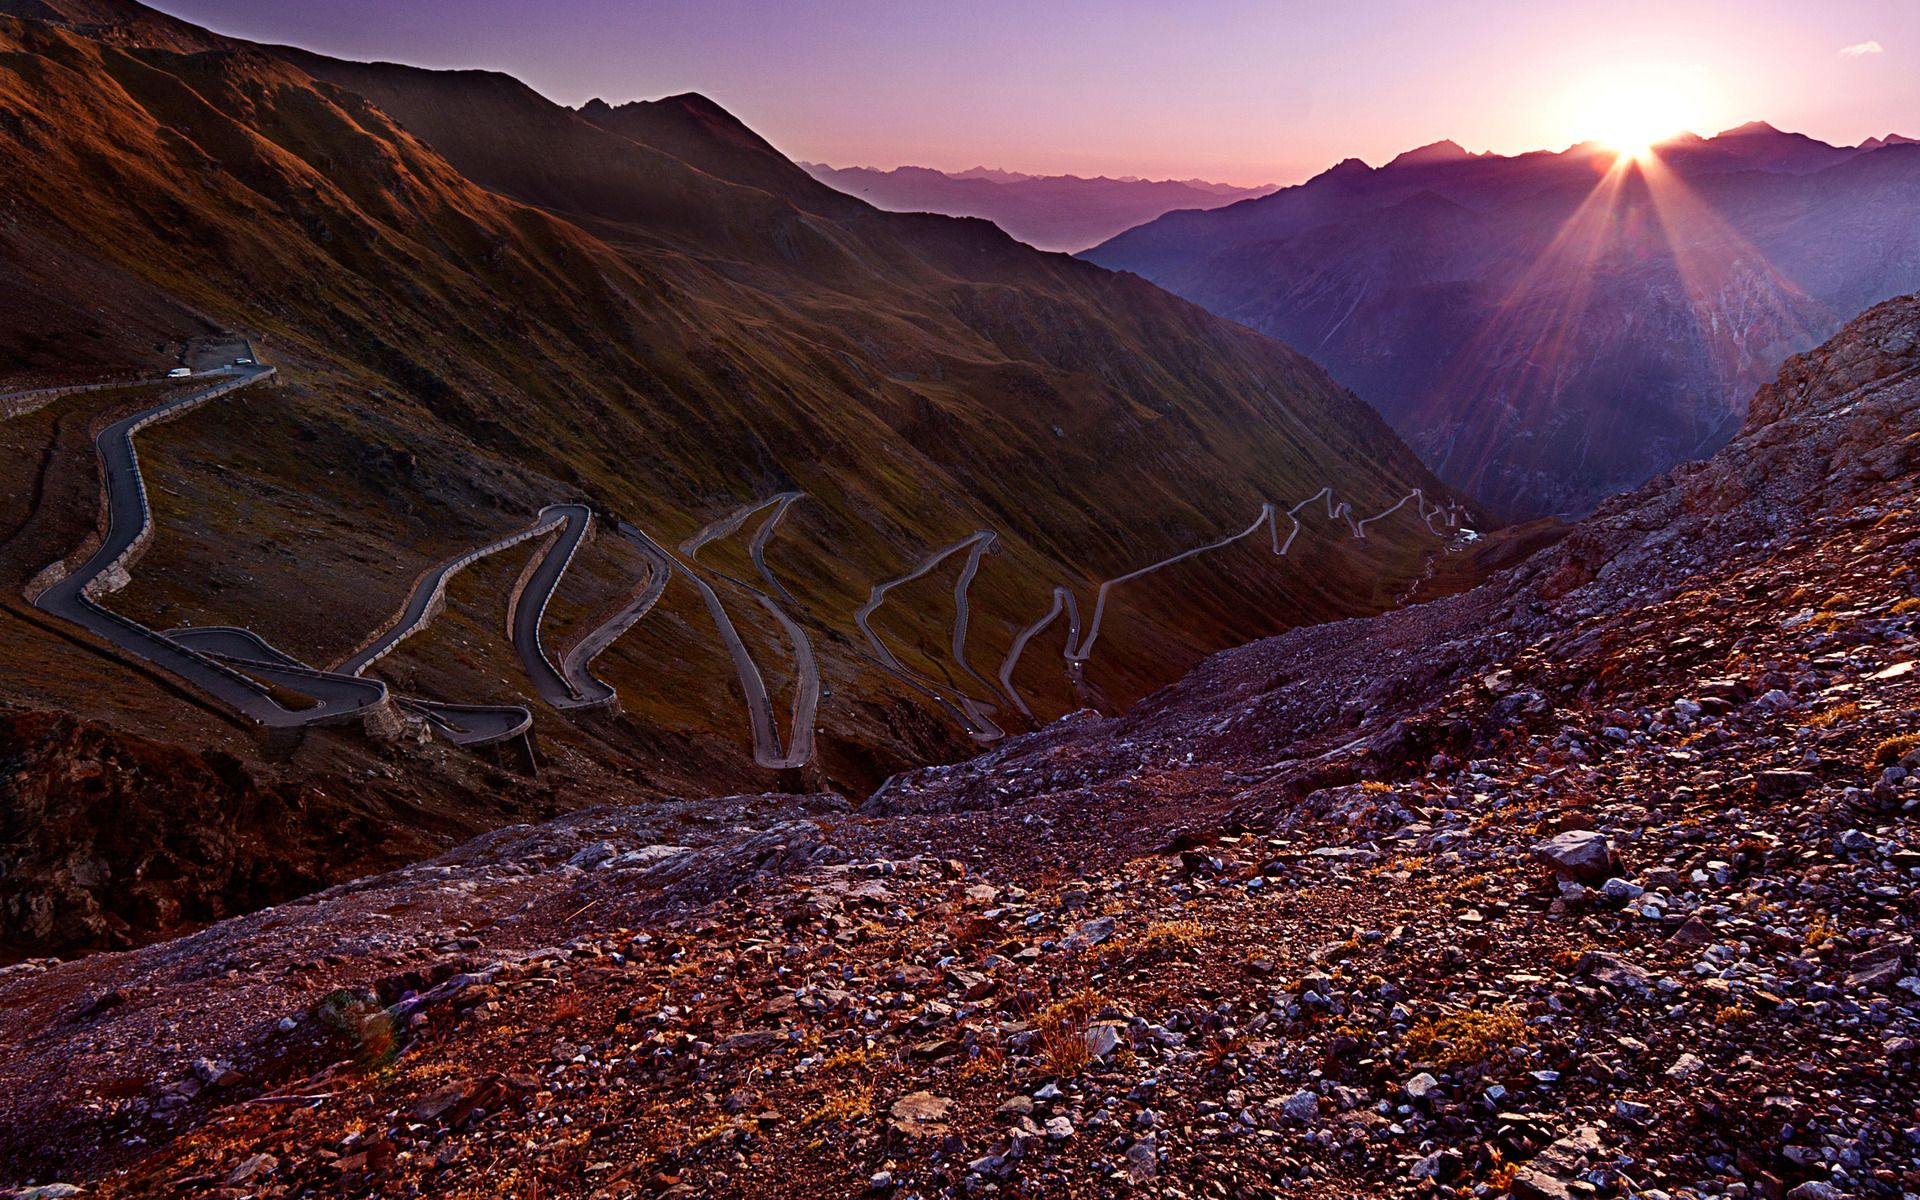 Gmail themes mountains - The Stelvio Pass Italian Passo Dello Stelvio German Stilfser Joch Located In Italy At 2757 M Feet Is The Highest Paved Mountain Pass In The Eastern